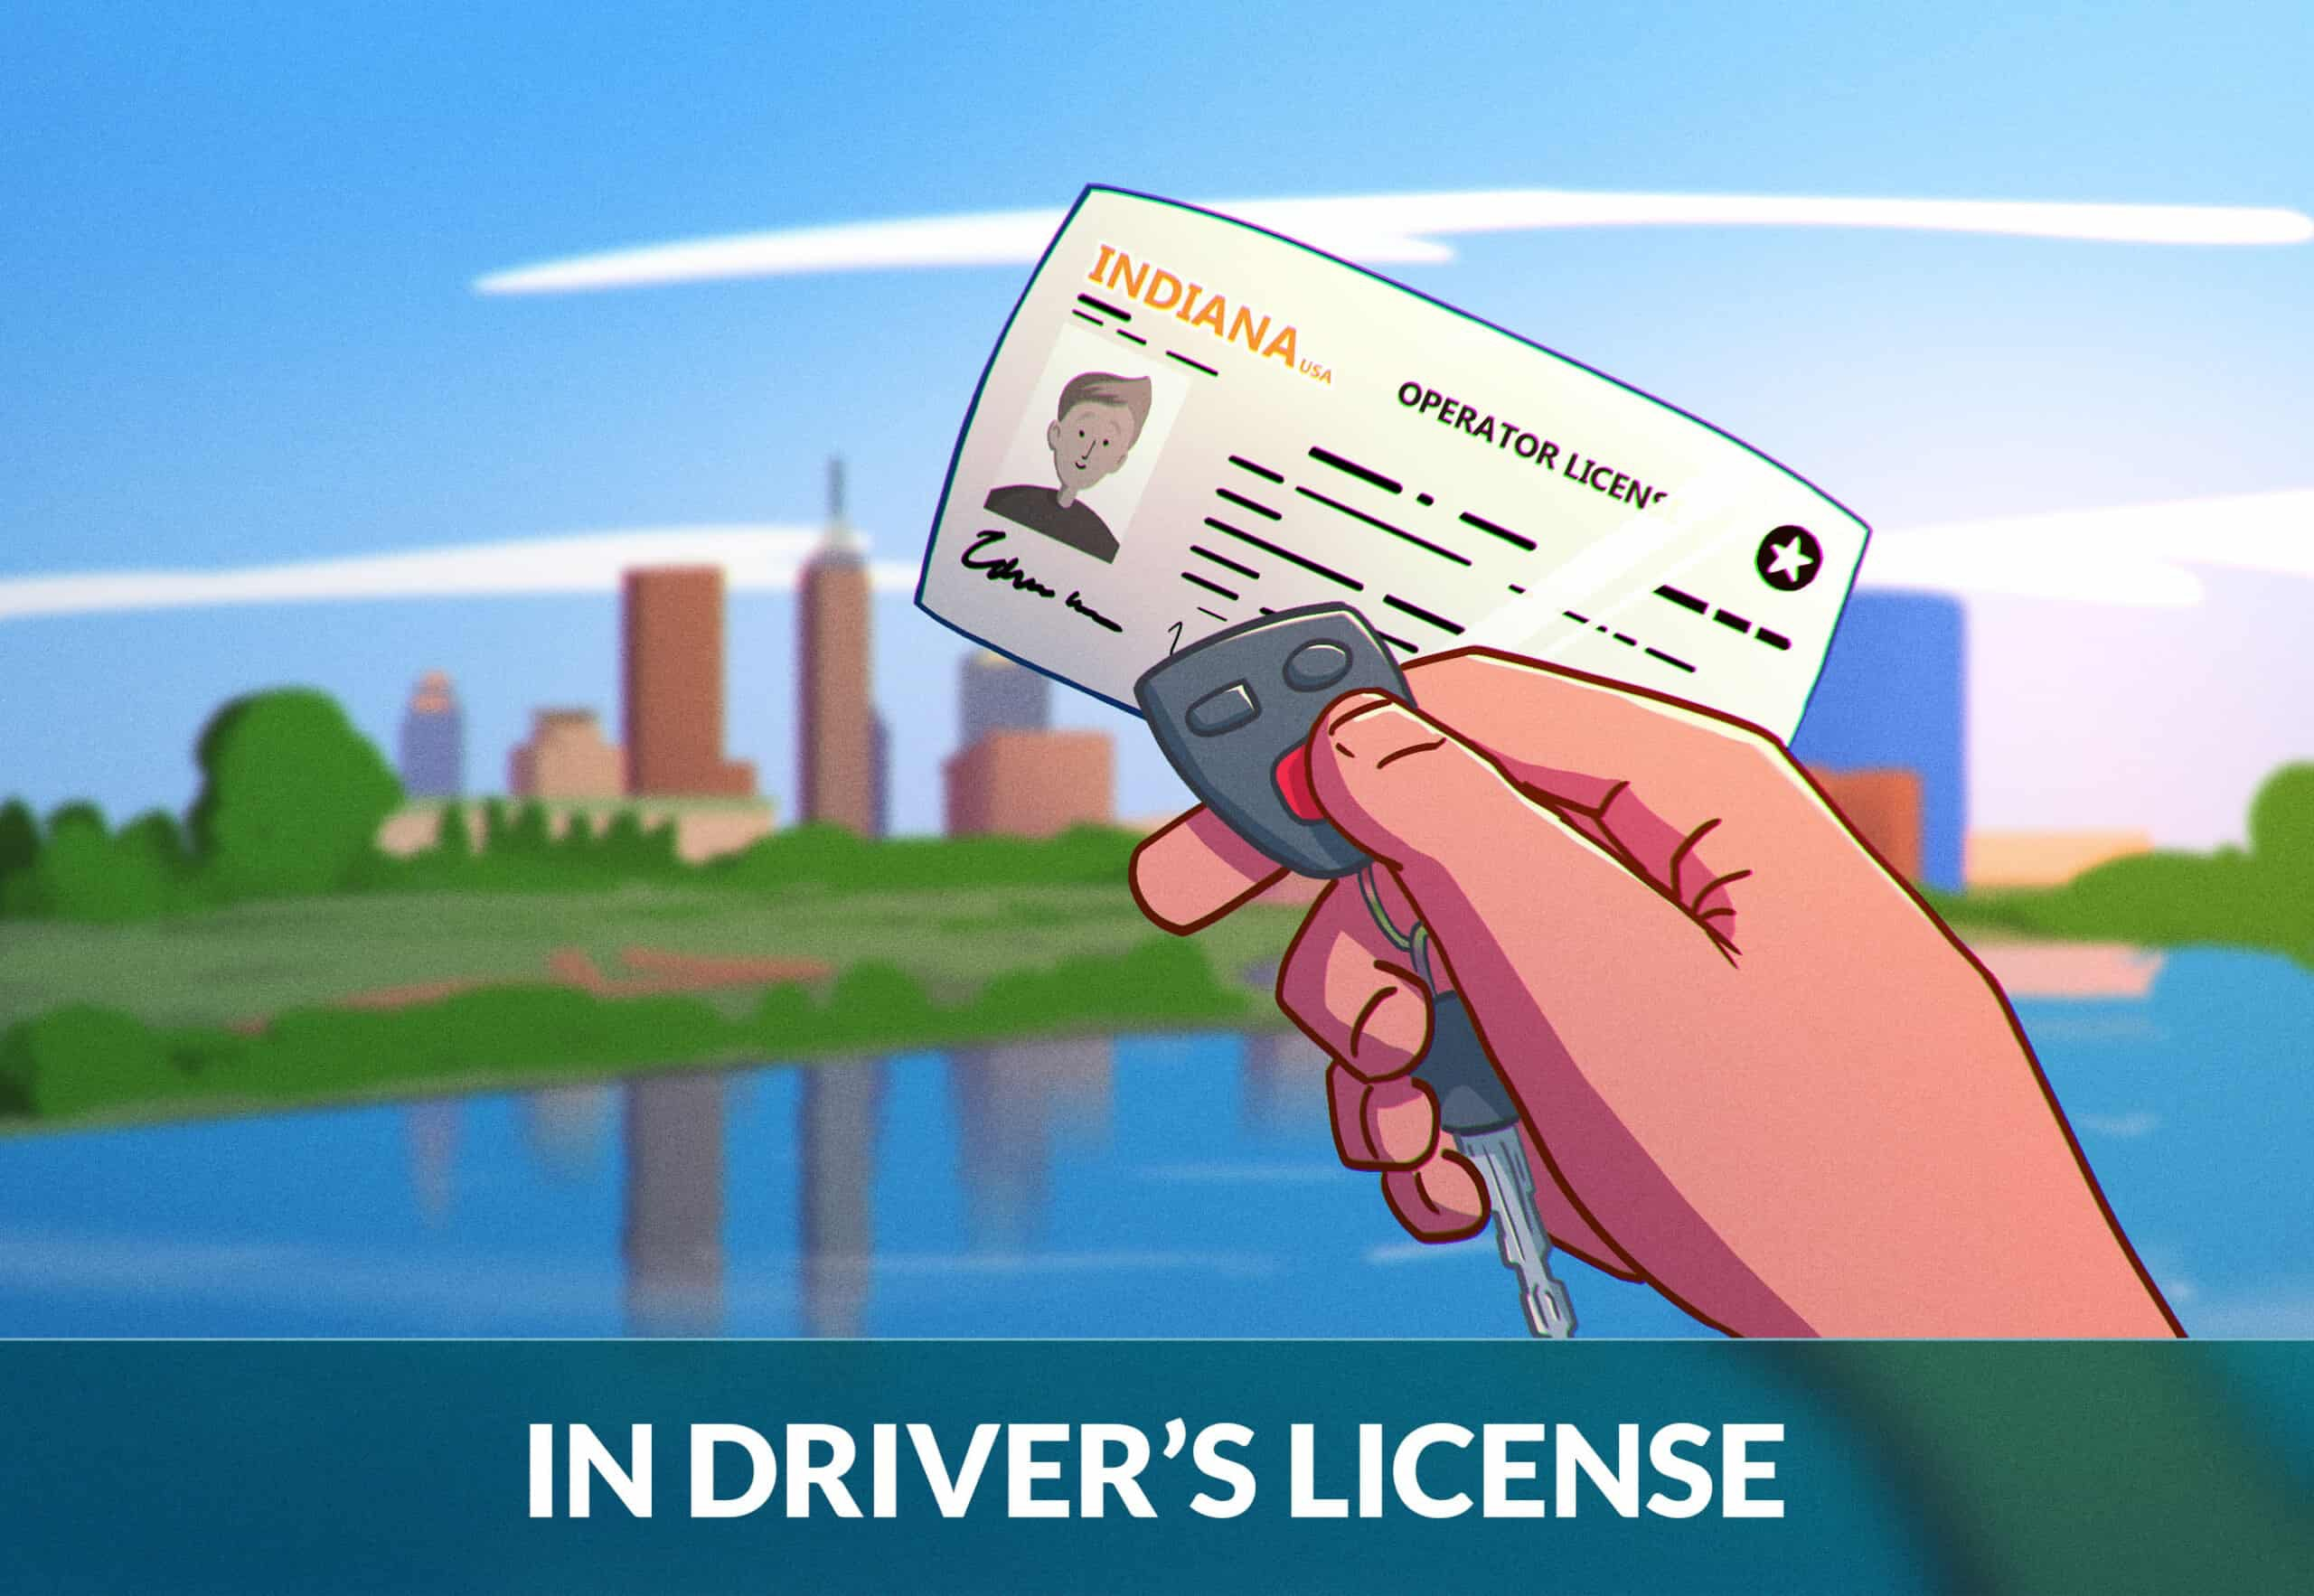 Indiana driver's license